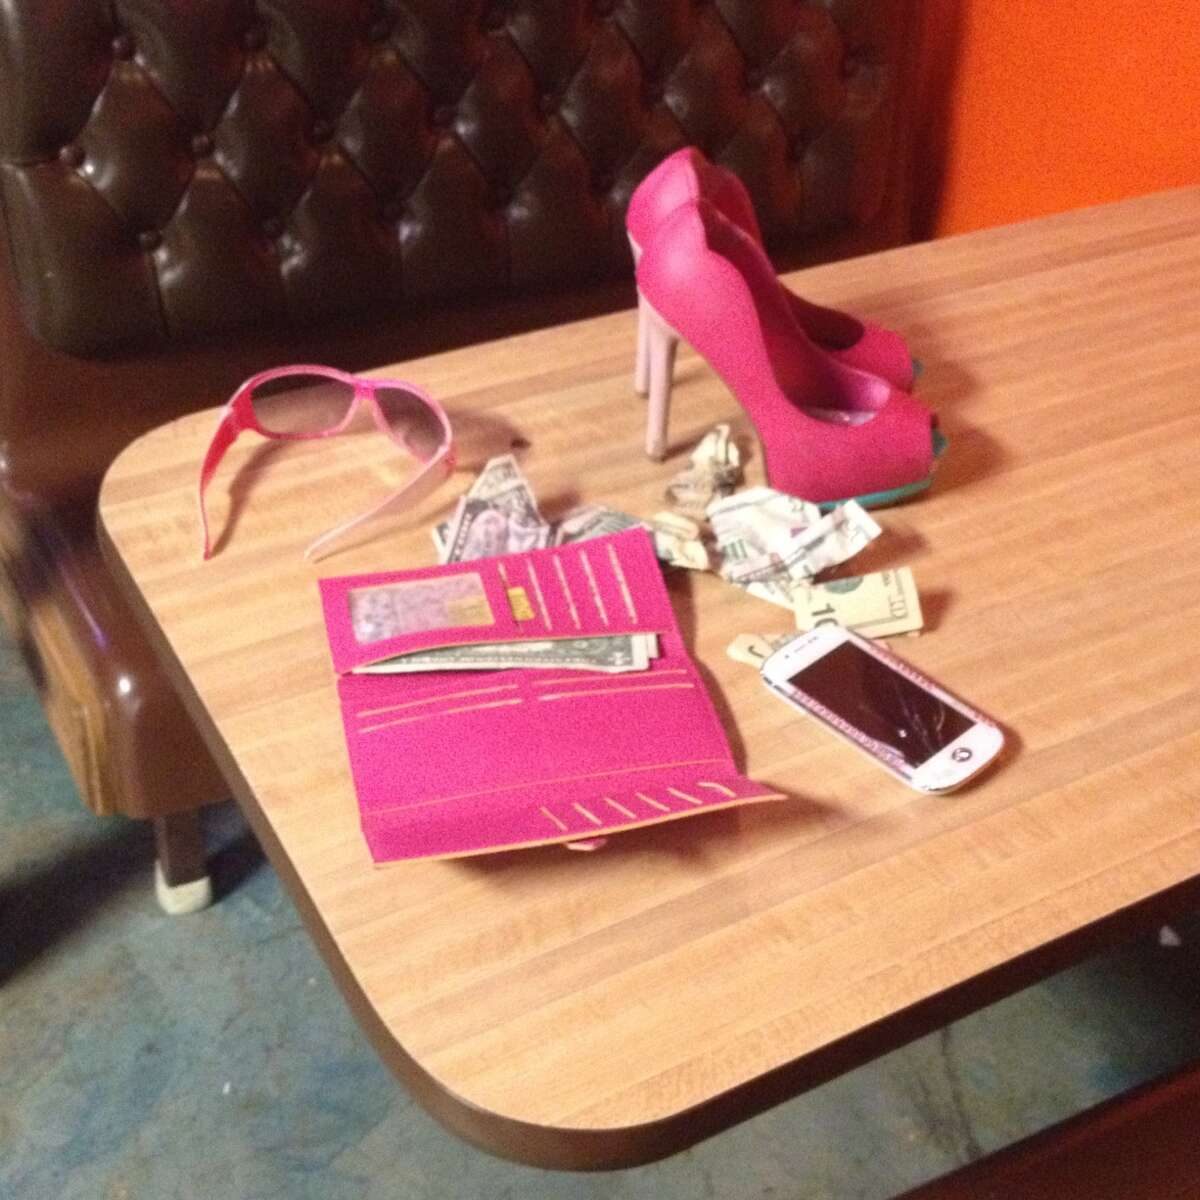 The average age at which girls first become victims of prostitution is 12 to 14, according to one study, notes the Texas Department of Public Safety.Stilettos, a cell phone and other belongings sit on the table of a Houston cantina raided by authorities for suspected ties to human trafficking, sex trafficking and related-prostitution.